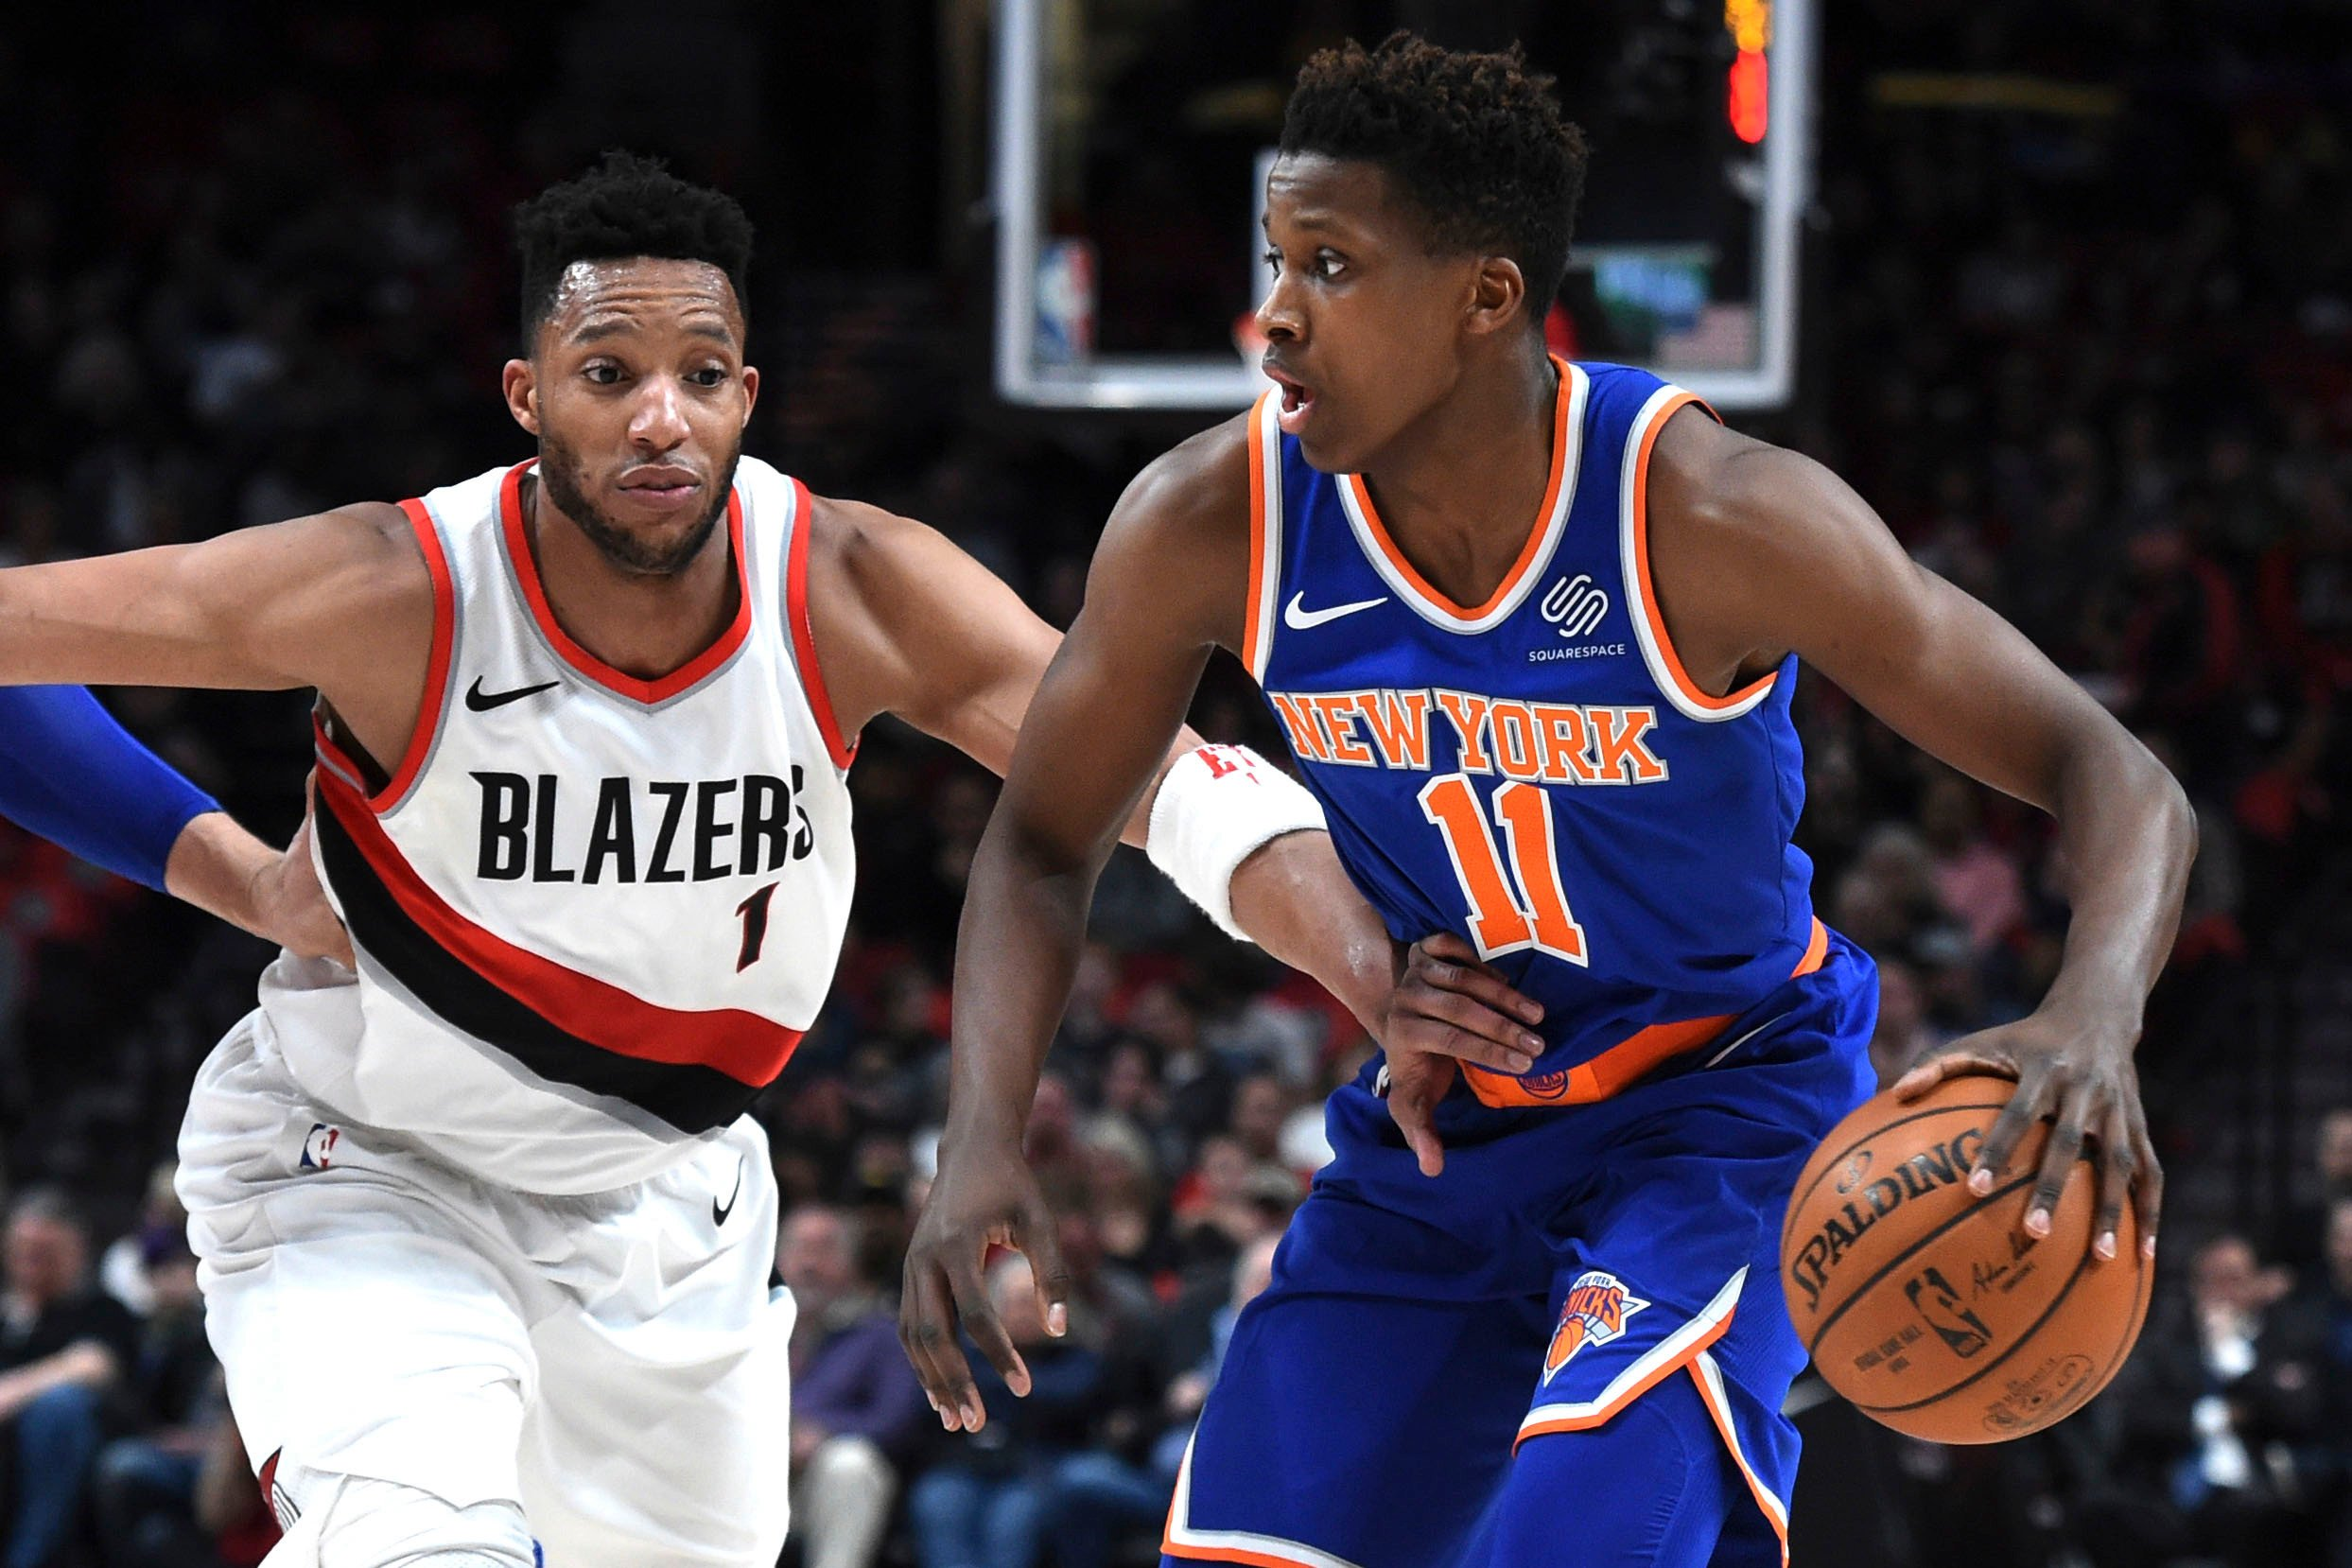 Frank Ntilikina struggles in first start as Knicks get routed